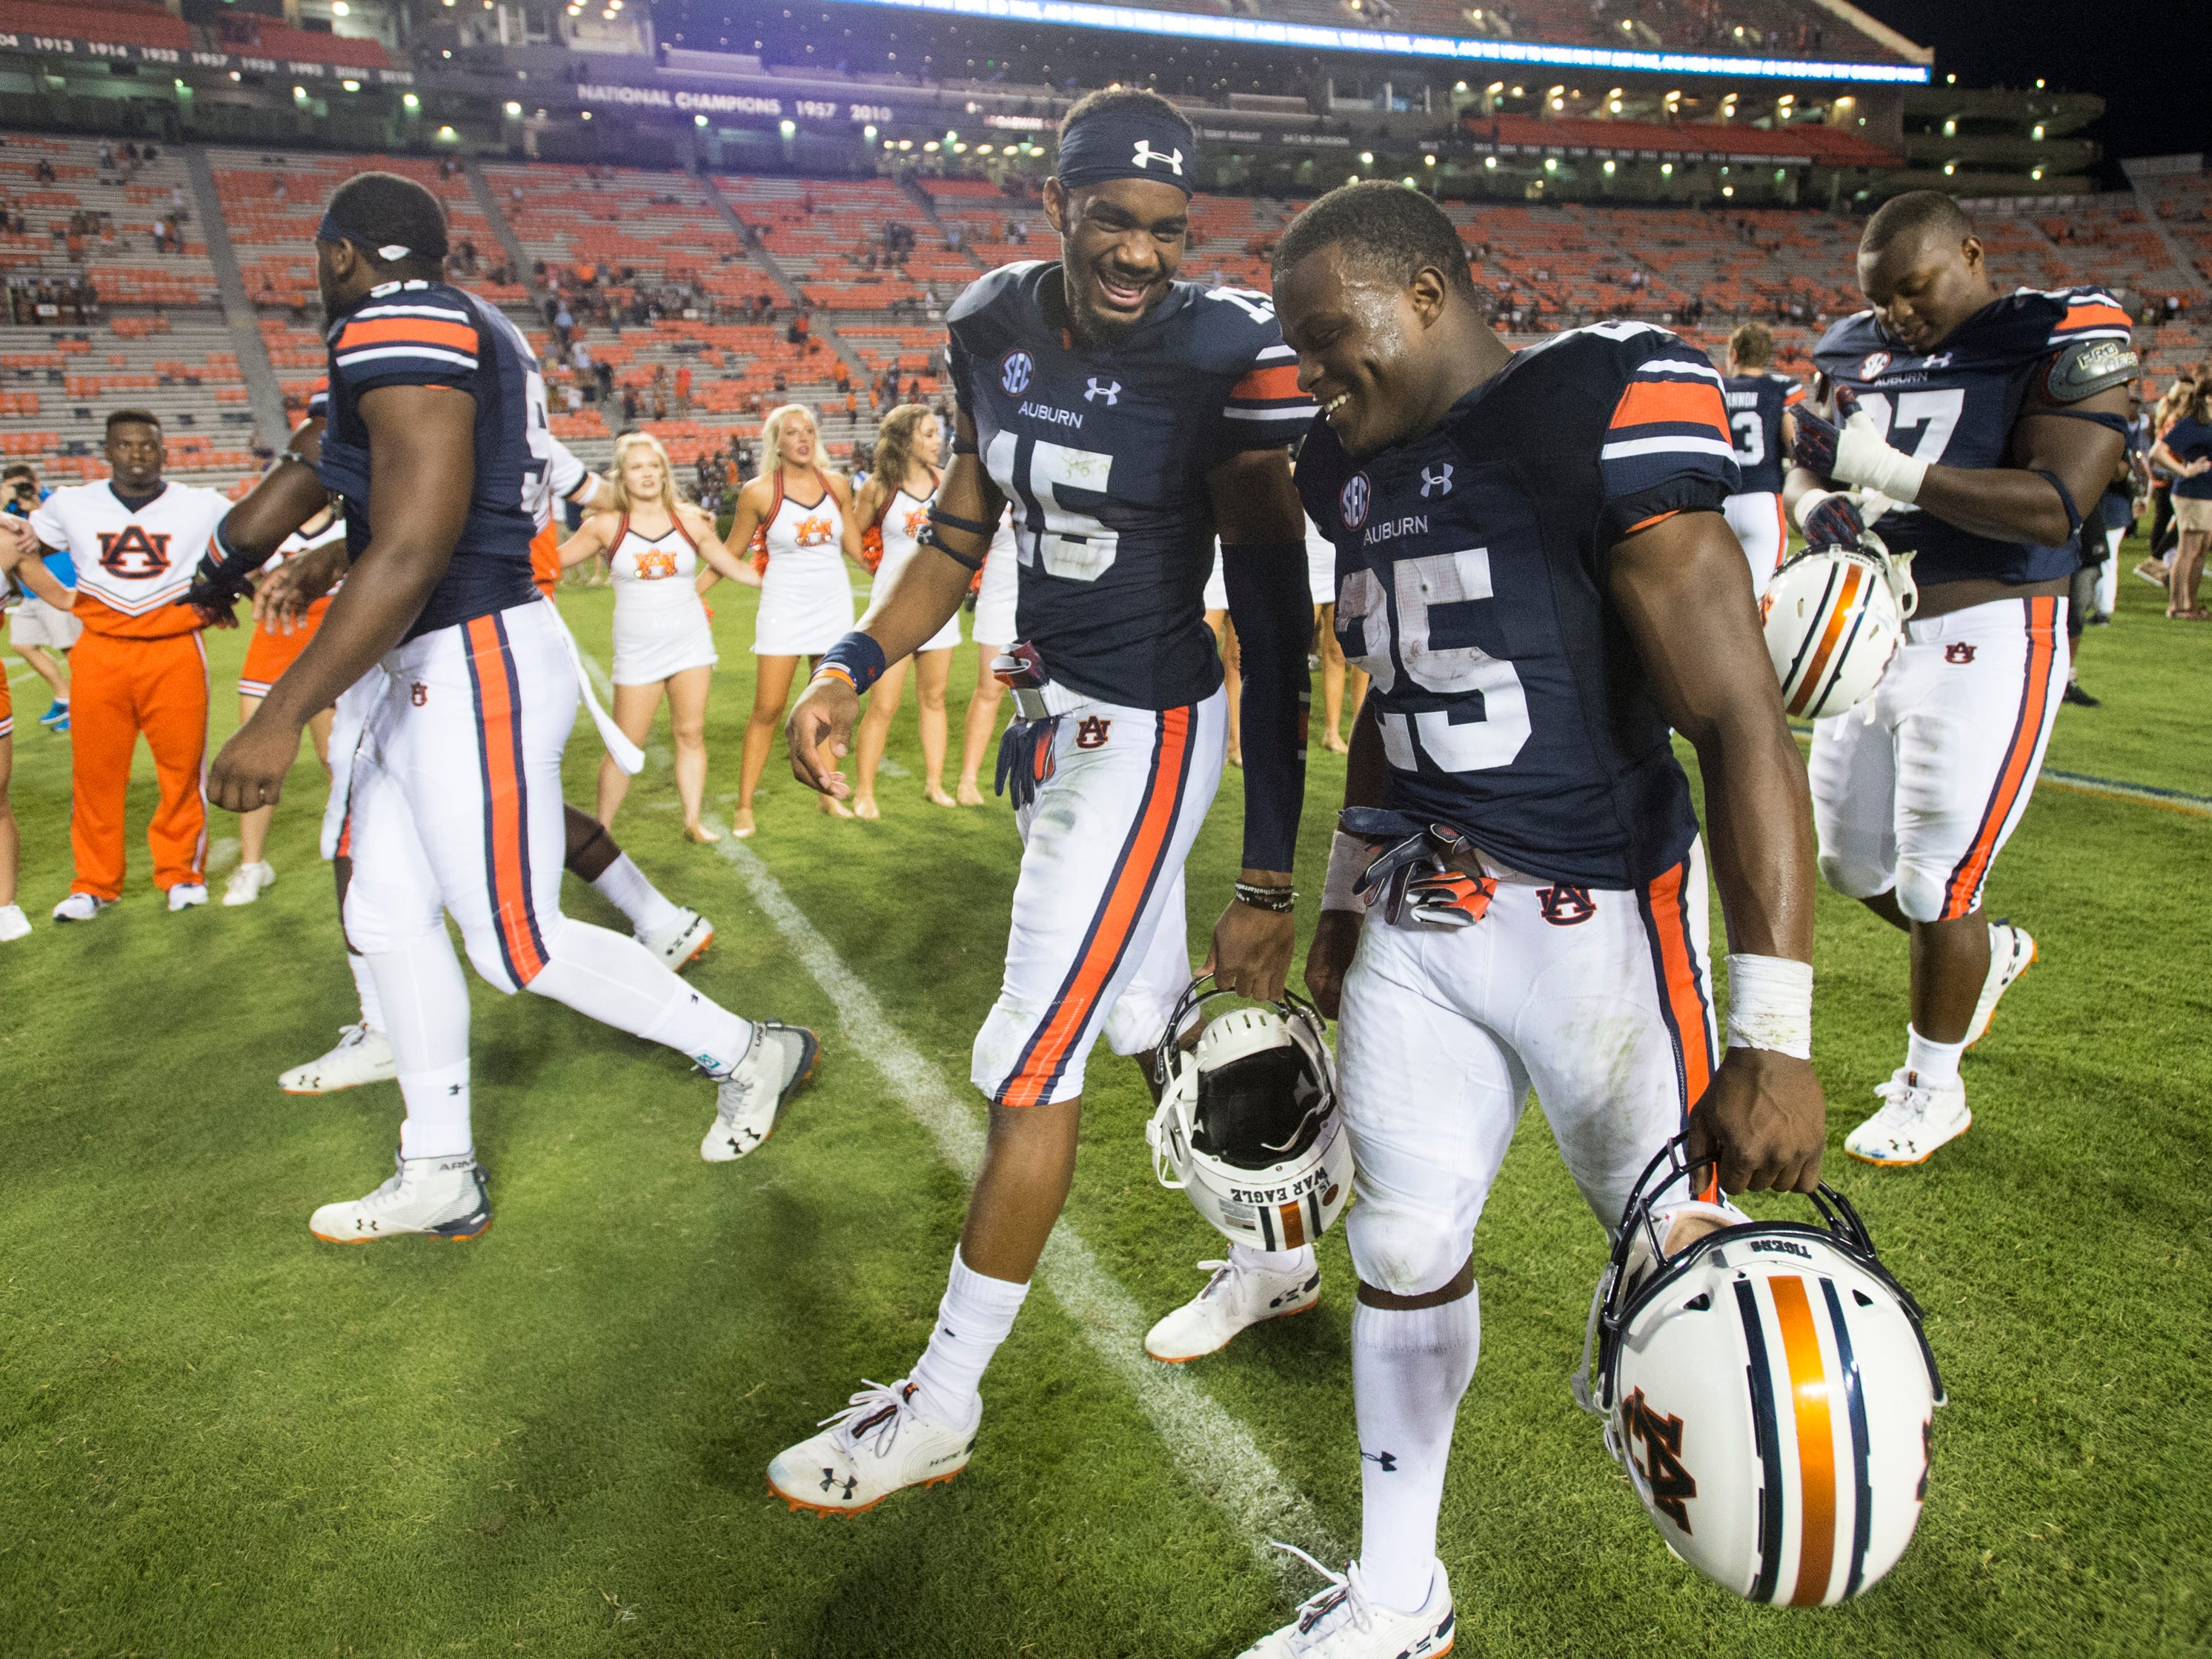 Auburn's Jordyn Peters (15) and Auburn's Shaun Shivers (25) walk off the field at Jordan-Hare Stadium in Auburn, Ala., on Saturday, Sept. 8, 2018. Auburn defeated Alabama State 63-9.